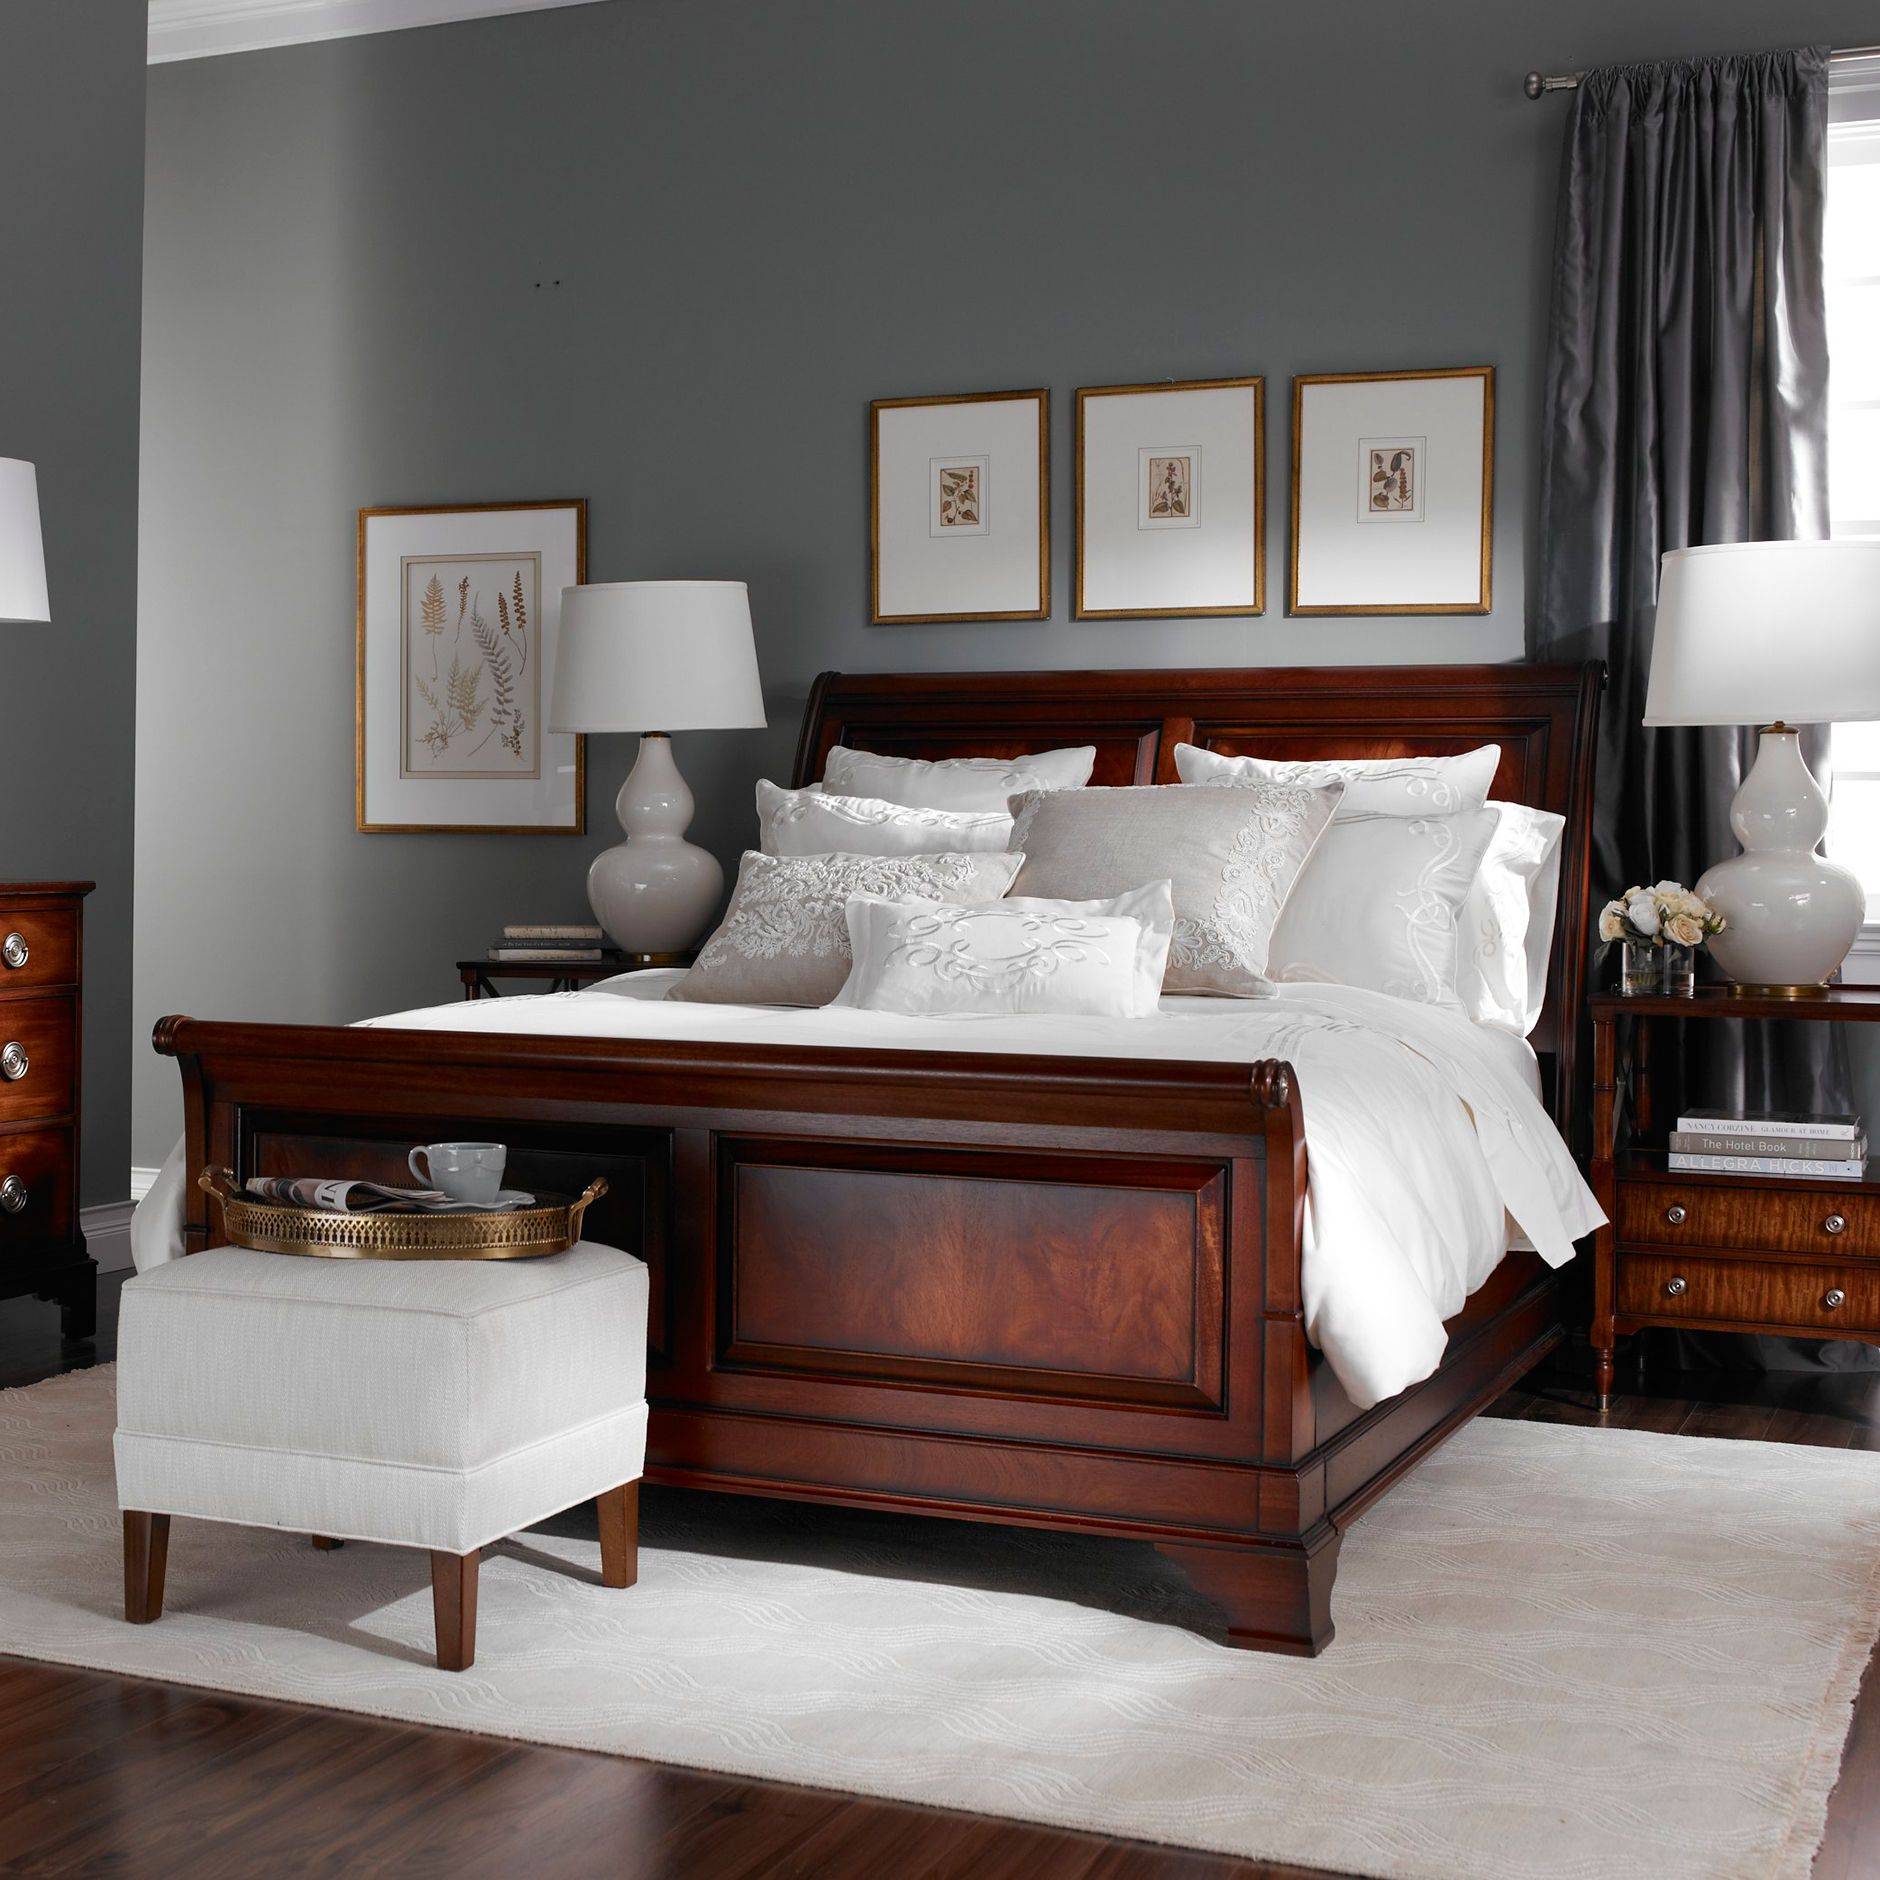 Somerset Bed In 2020 Dark Wood Bedroom Furniture Wood Bedroom